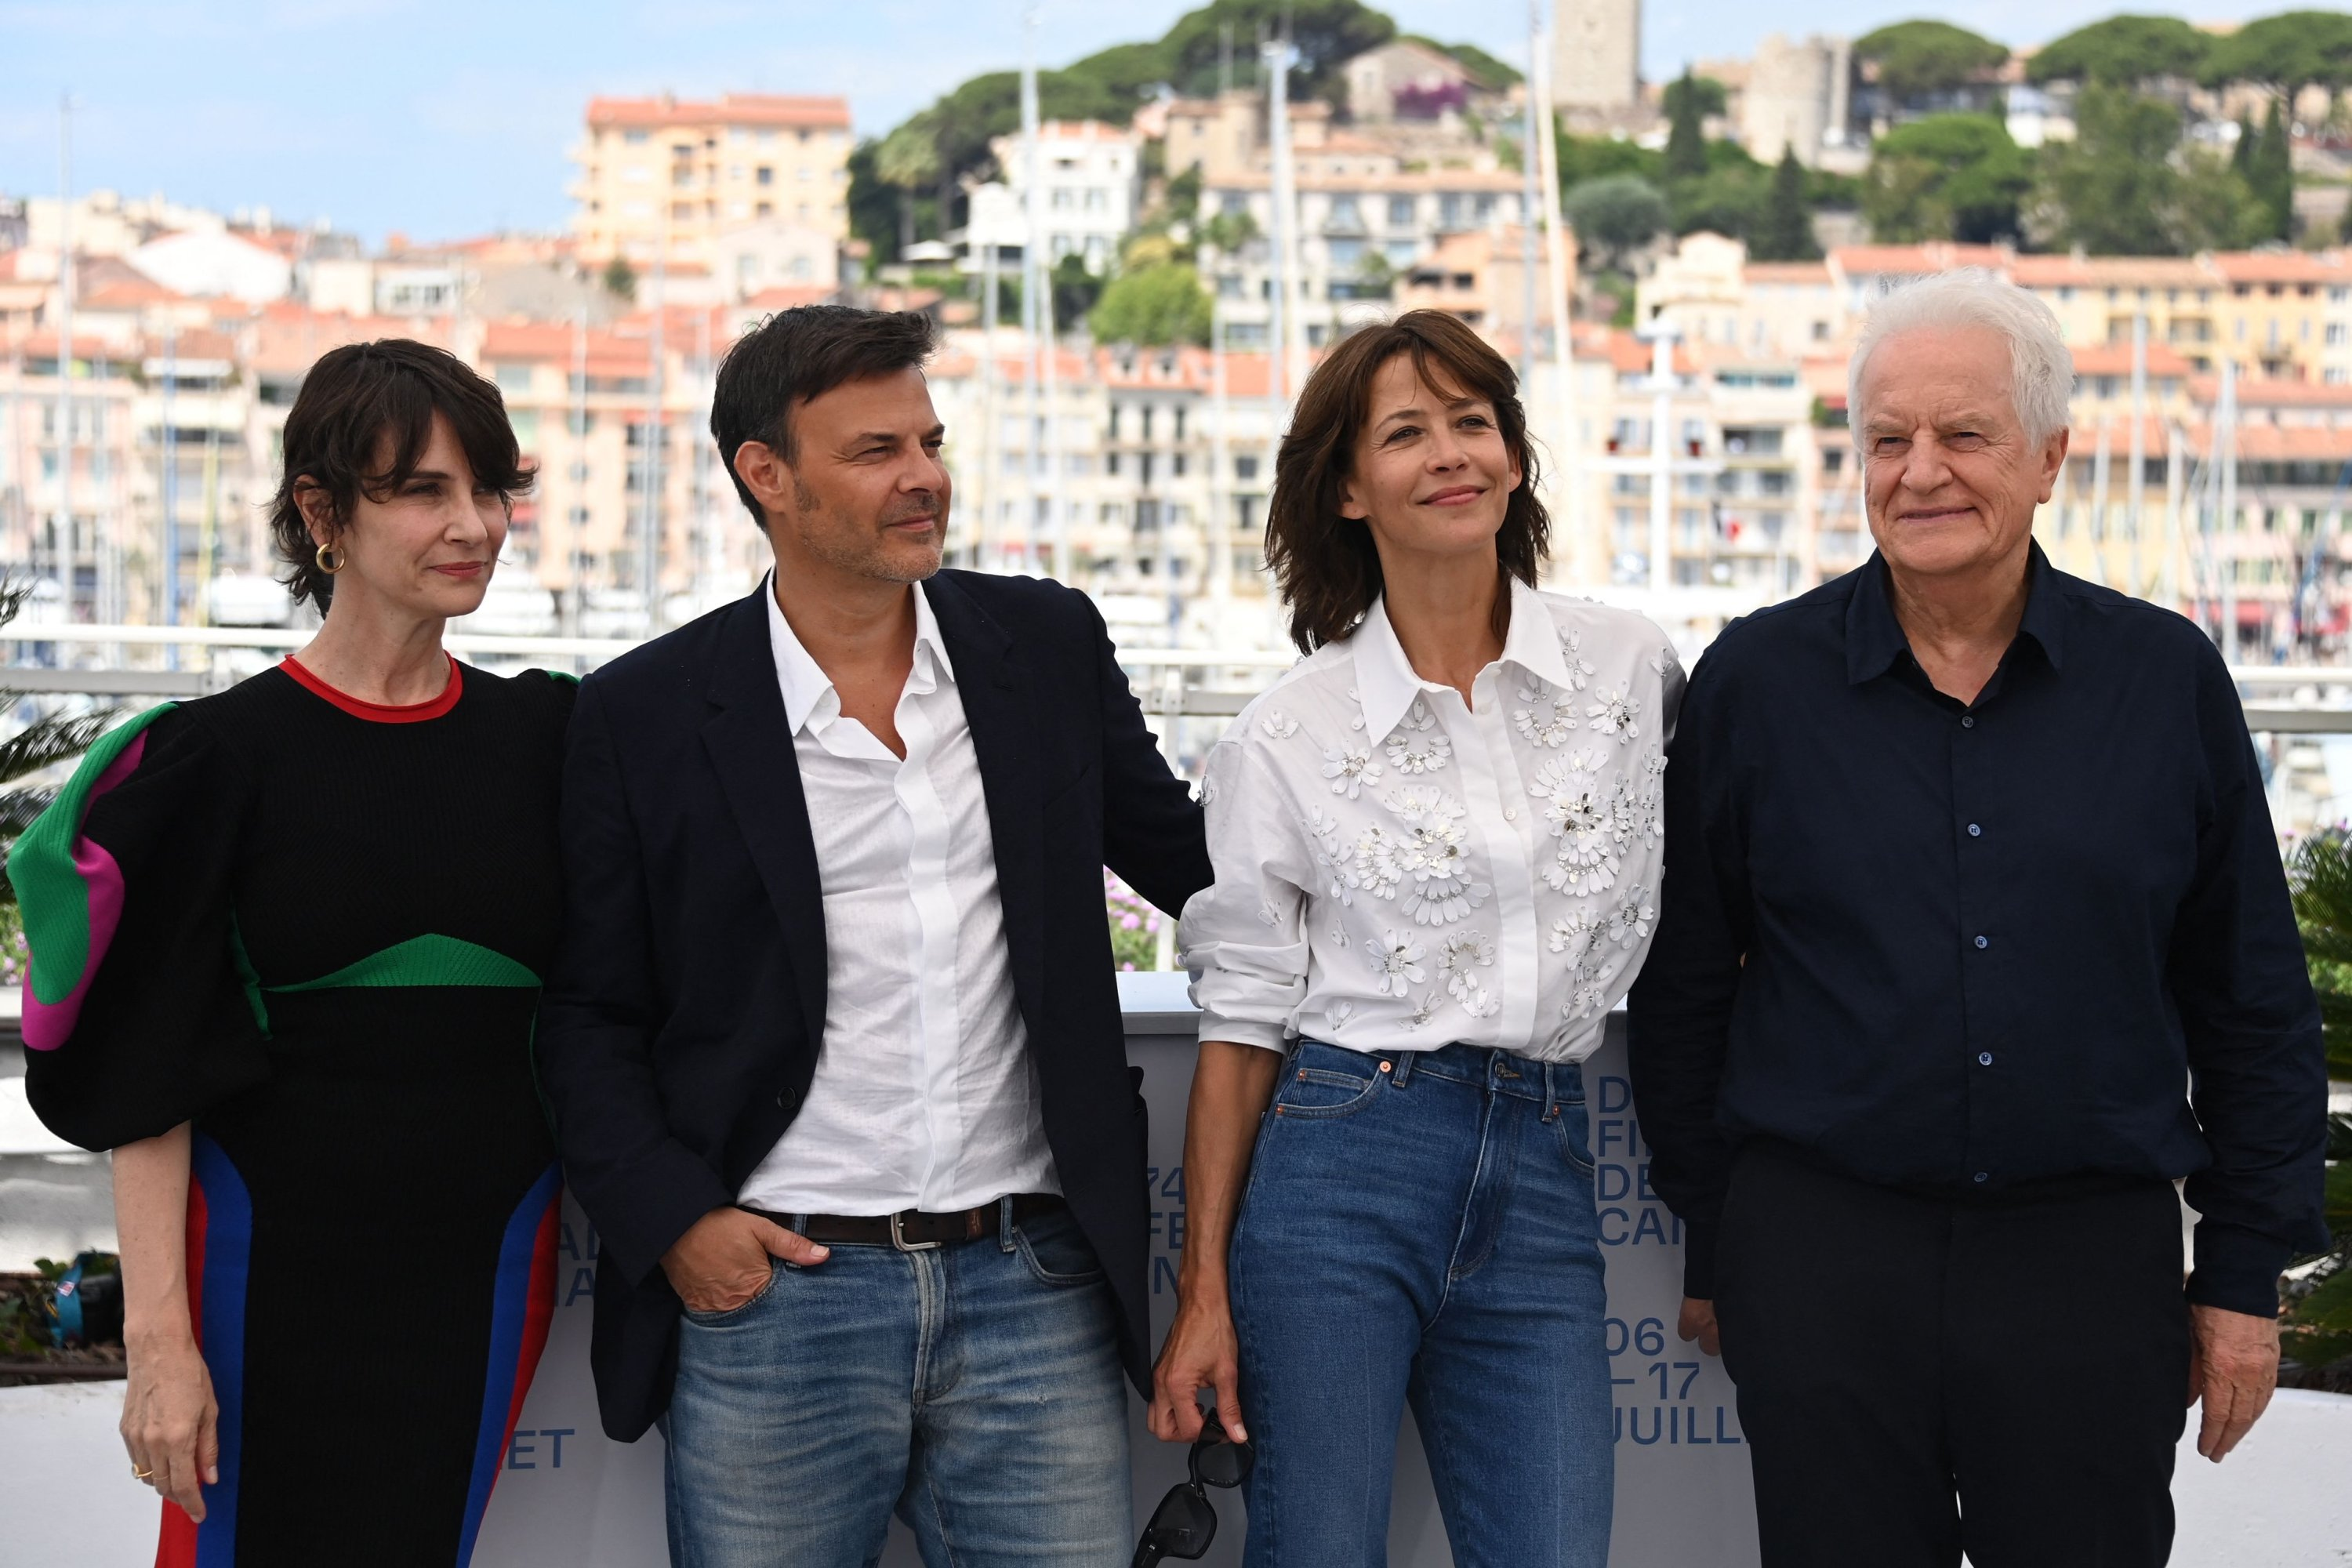 From left to right, French actress Geraldine Pailhas, French director Francois Ozon, French actress Sophie Marceau and French actor Andre Dussollier pose for a photocall for the film 'Tout s'est Bien Passe' ('Everything Went Fine') at the 74th edition of the Cannes Film Festival in Cannes, southern France, July 8, 2021. (AFP Photo)